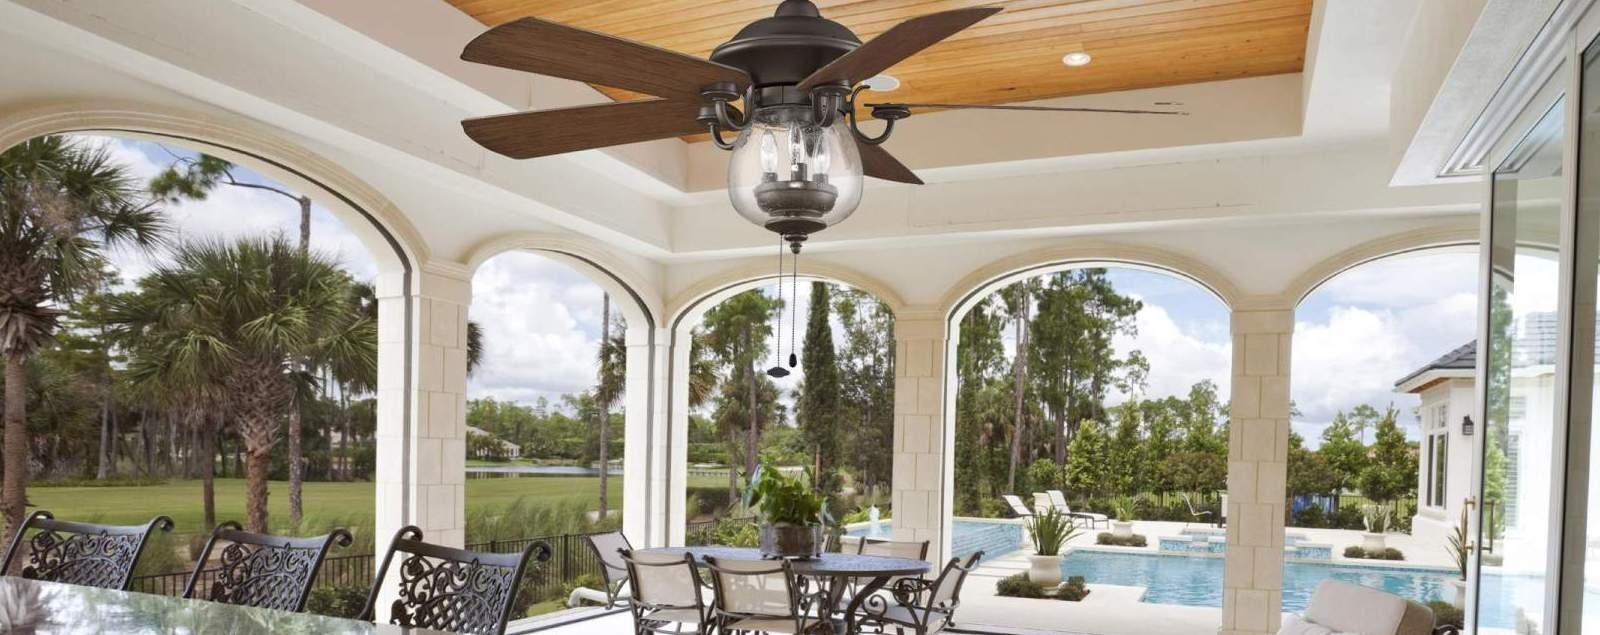 Mission Style Outdoor Ceiling Fans With Lights With 2019 Outdoor Ceiling Fans – Shop Wet, Dry, And Damp Rated Outdoor Fans (View 17 of 20)